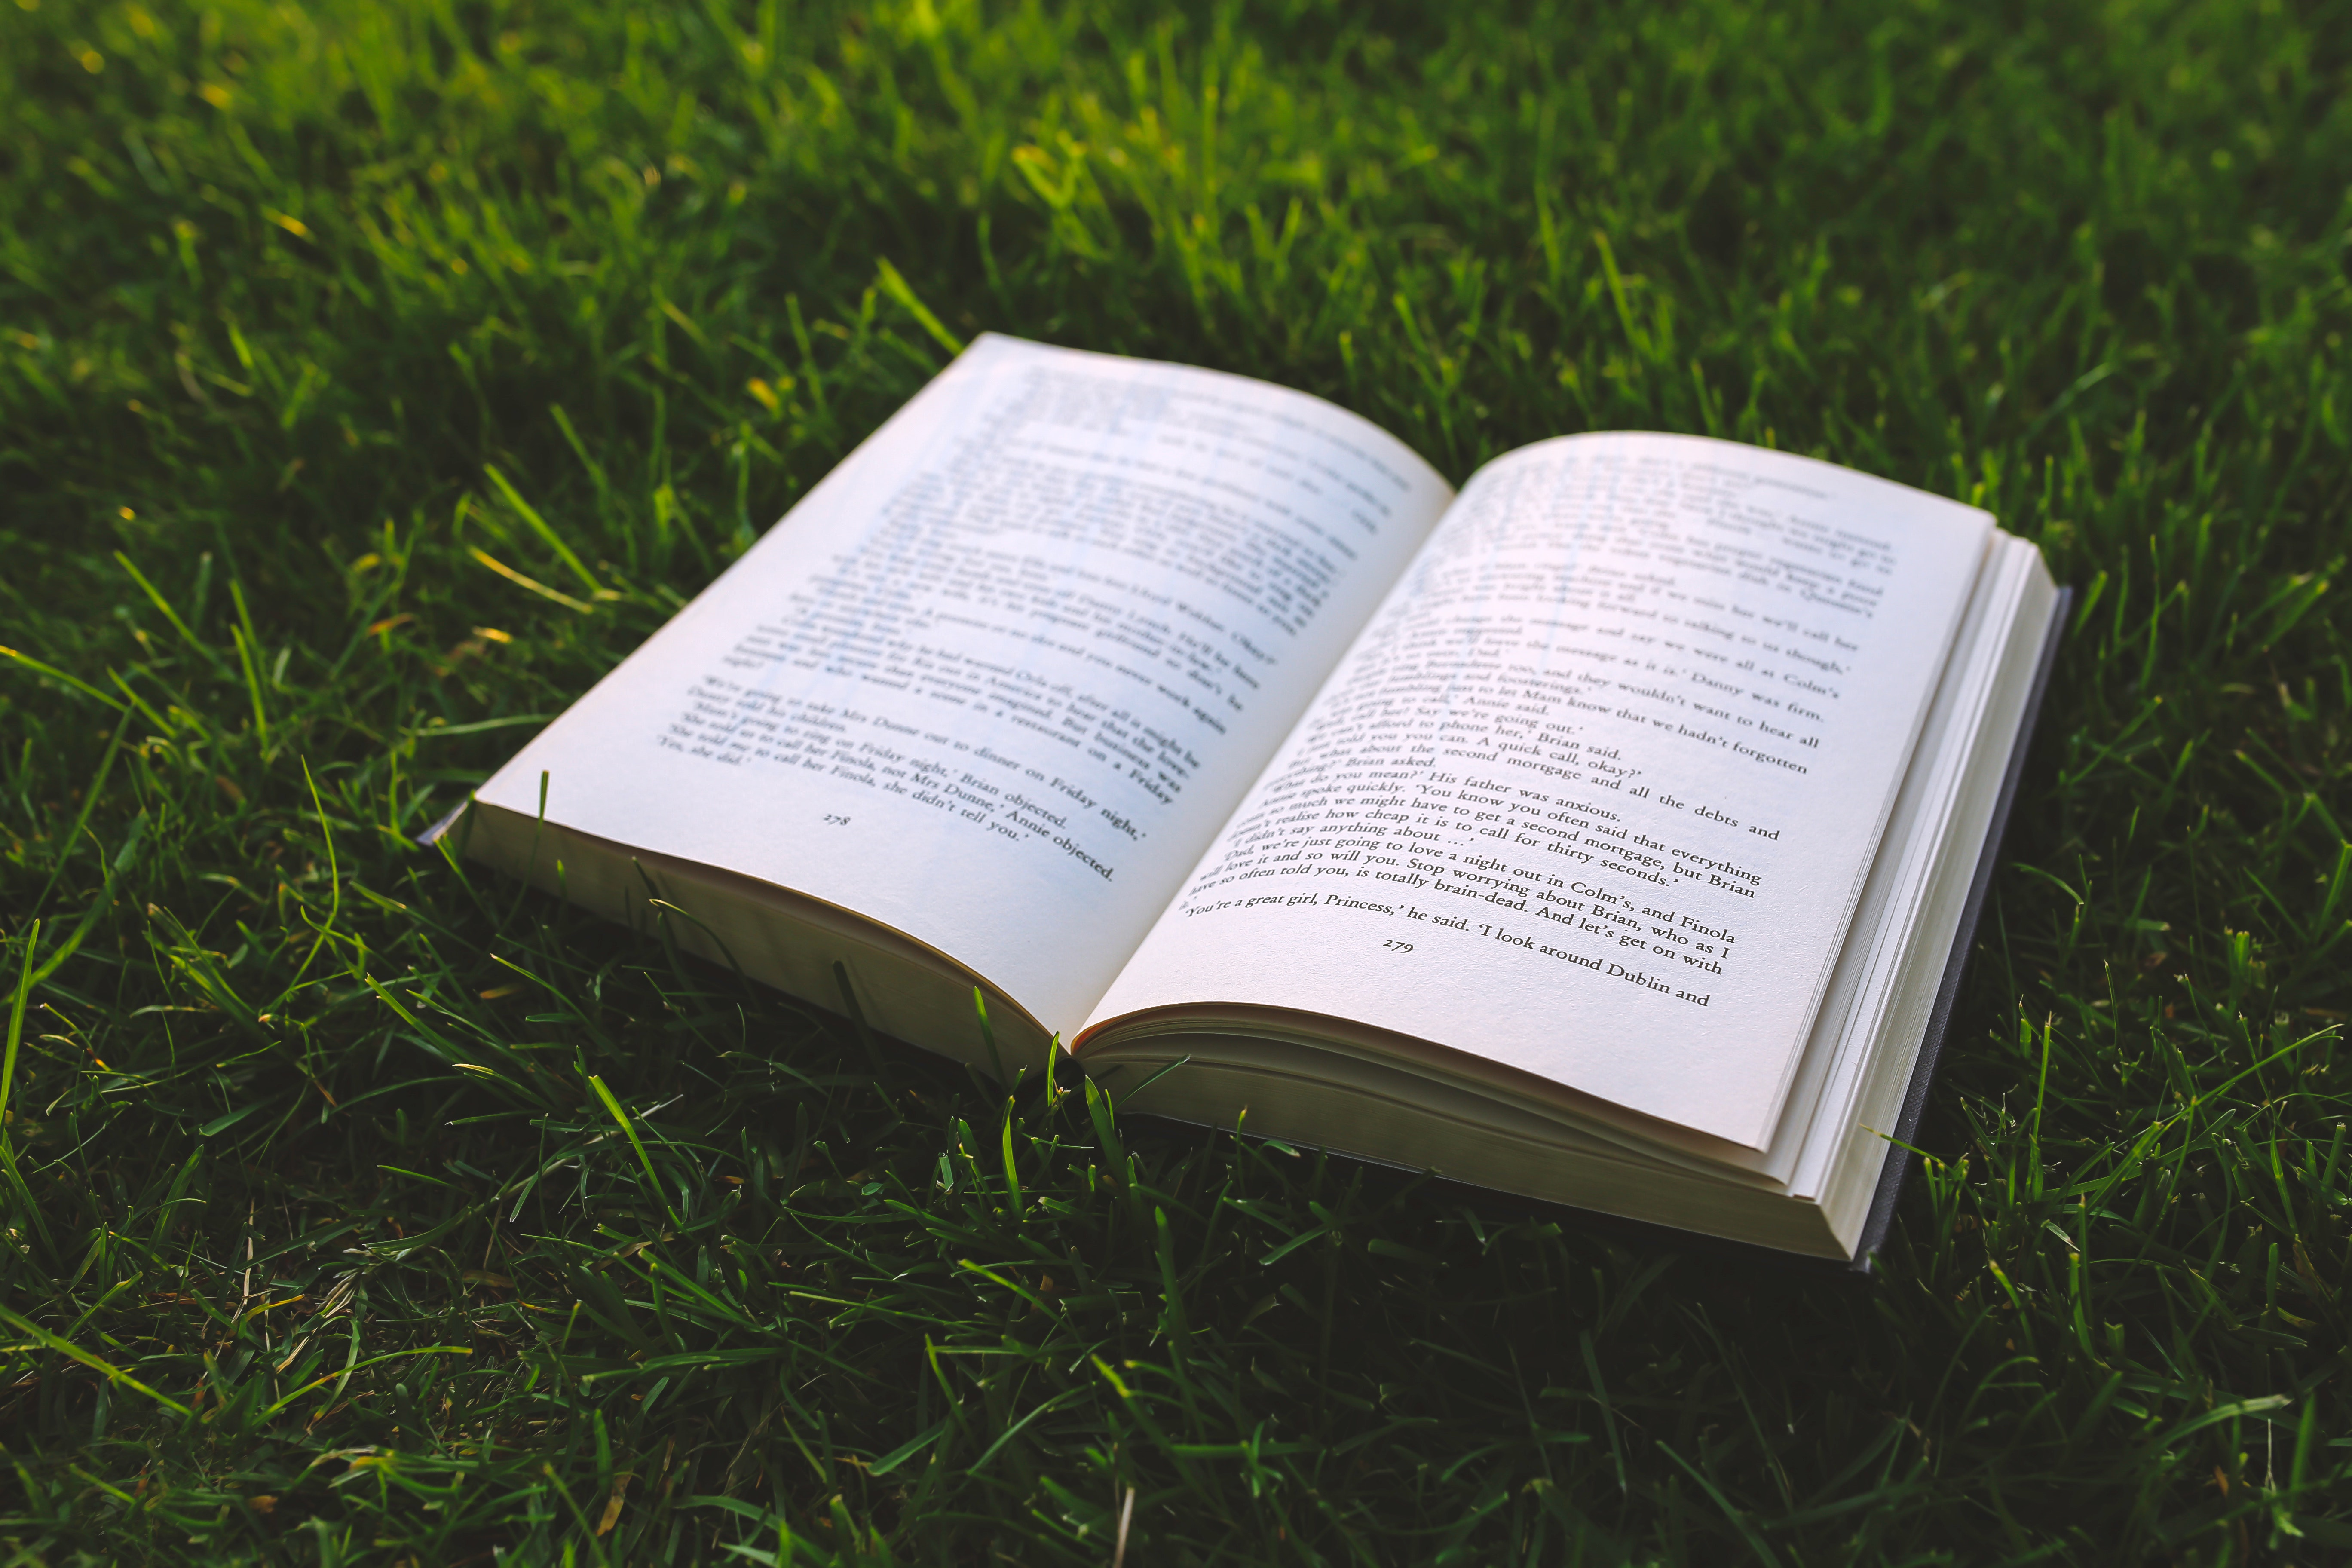 Open book in grass.